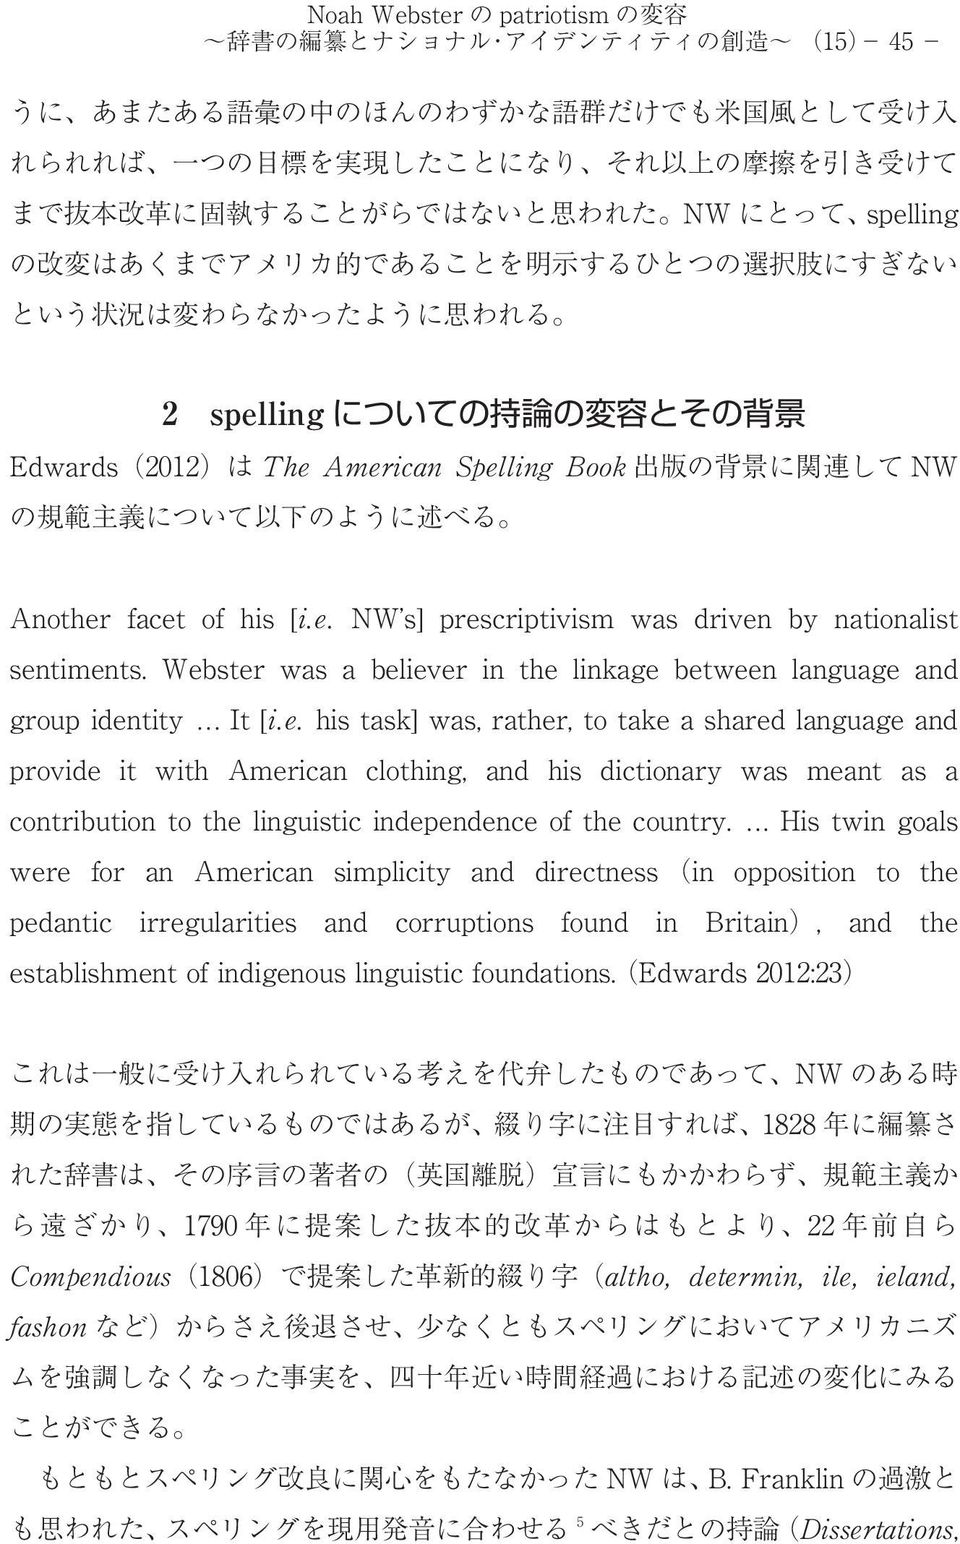 関 連 して NW の 規 範 主 義 について 以 下 のように 述 べる Another facet of his [i.e. NW s] prescriptivism was driven by nationalist sentiments. Webster was a believer in the linkage between language and group identity.